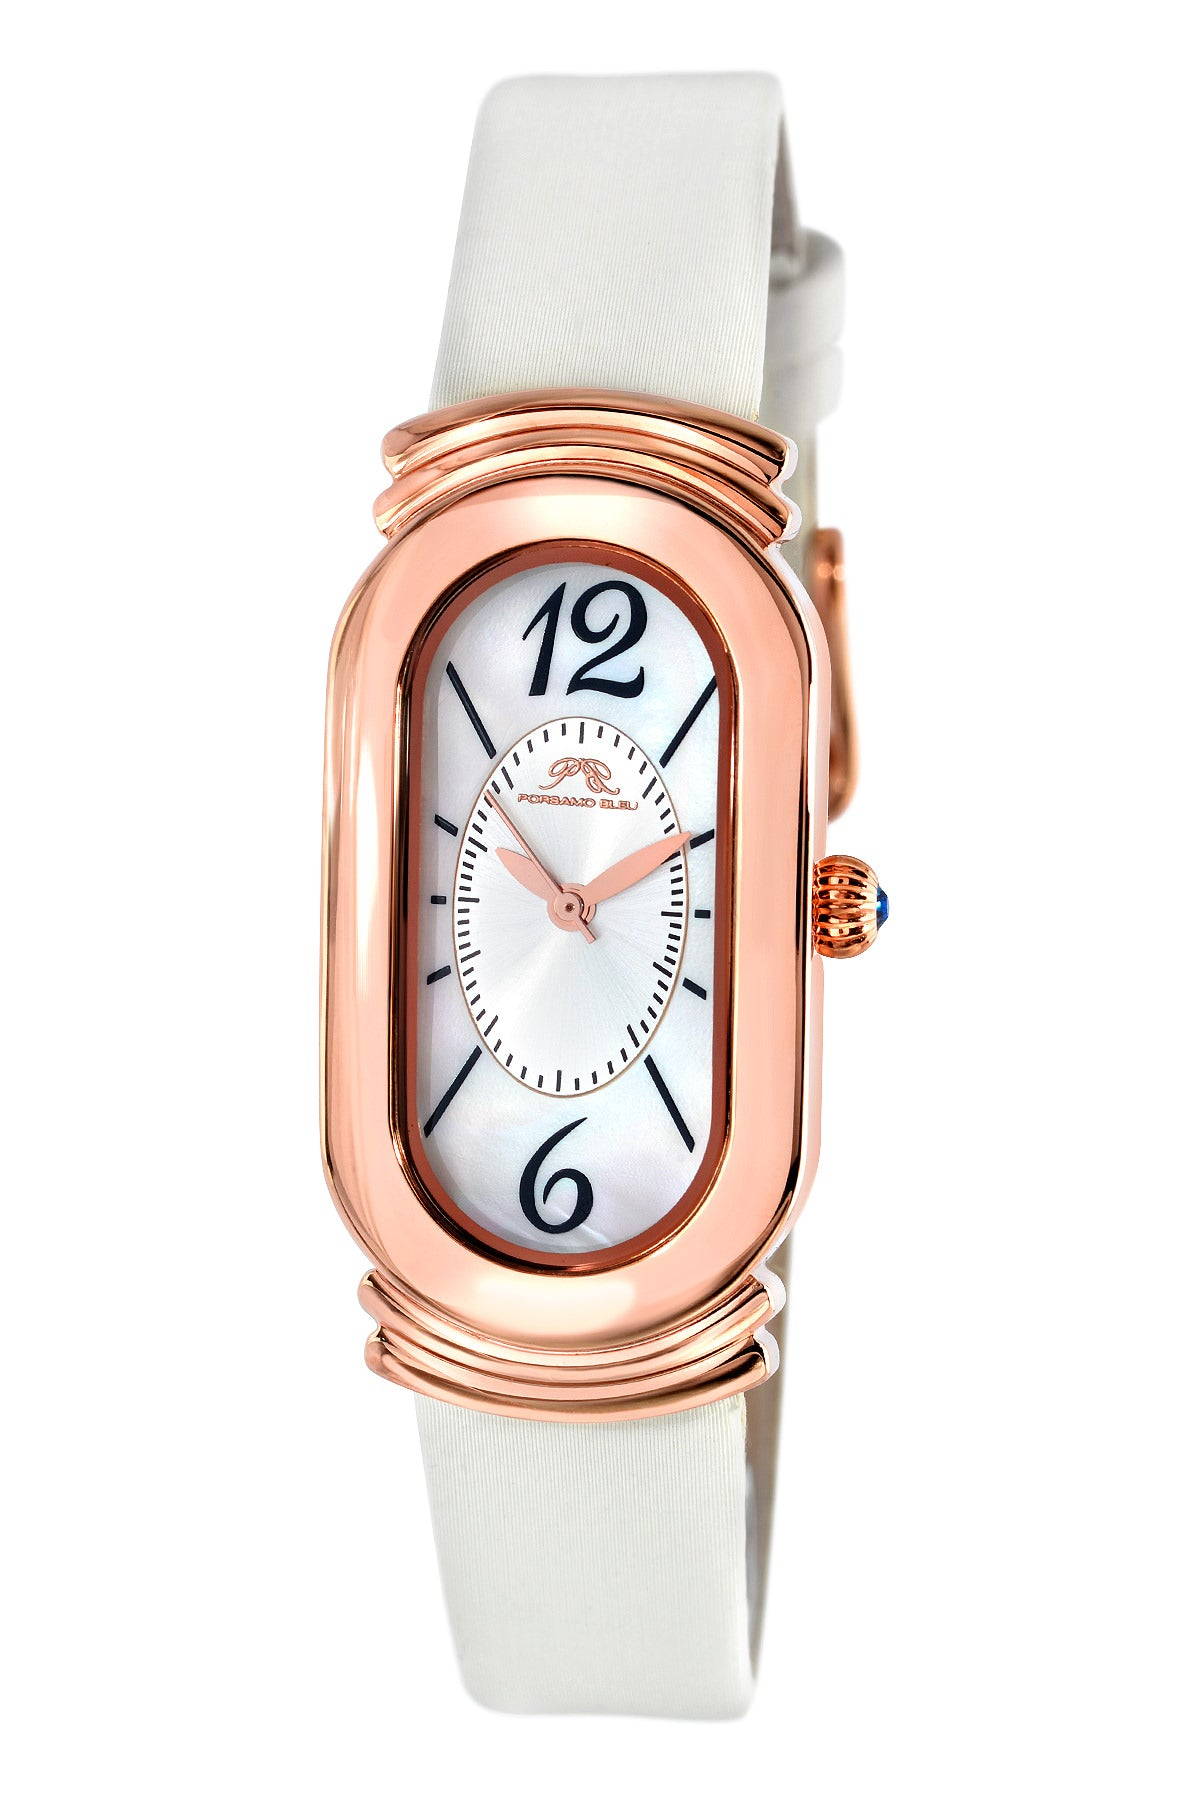 Porsamo Bleu Camille luxury women's silk covered leather watch, rose, white 972ACAL